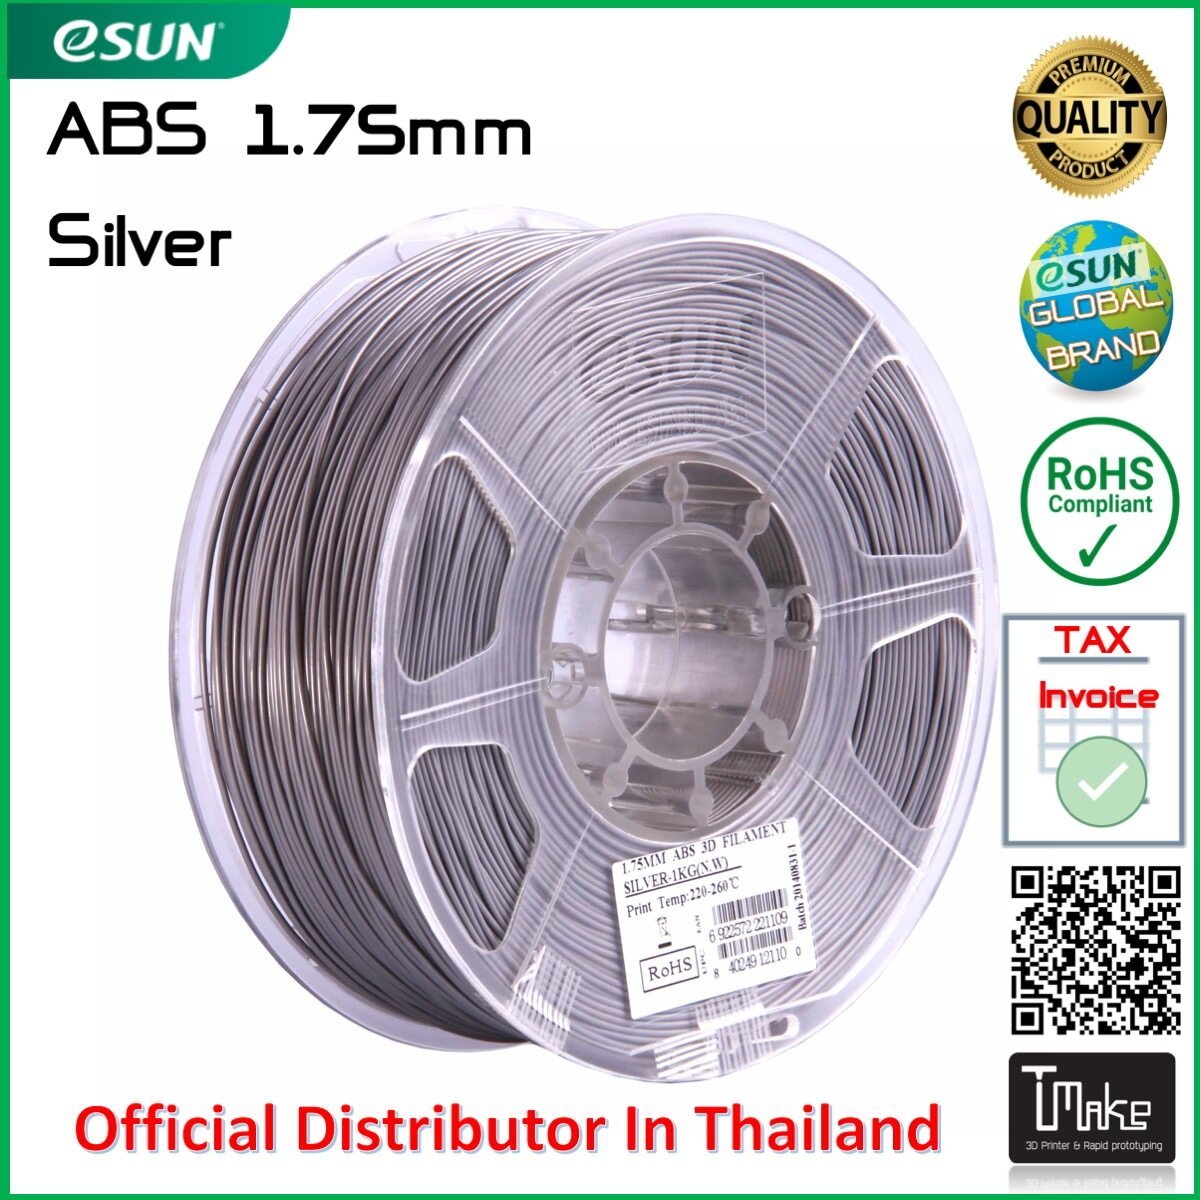 Esun Filament Abs Silver Size 1.75mm For 3d Printer.